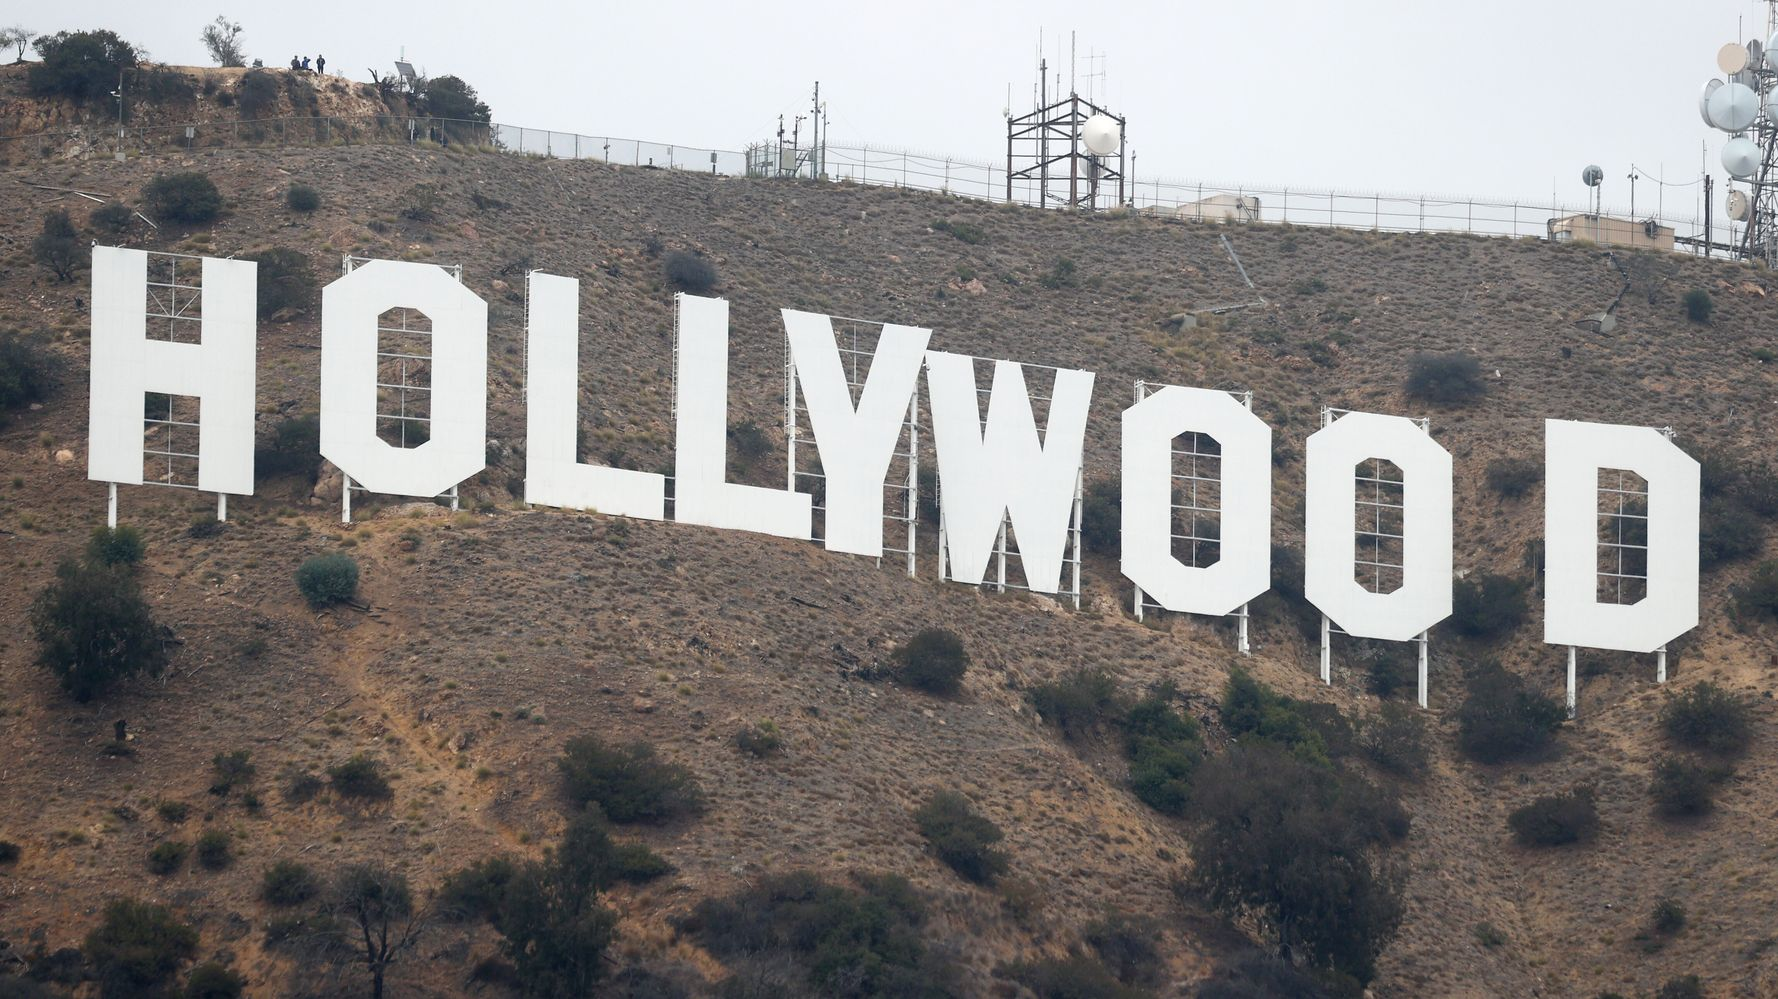 Hollywood Workers Secure Deal With Studios, Averting Strike